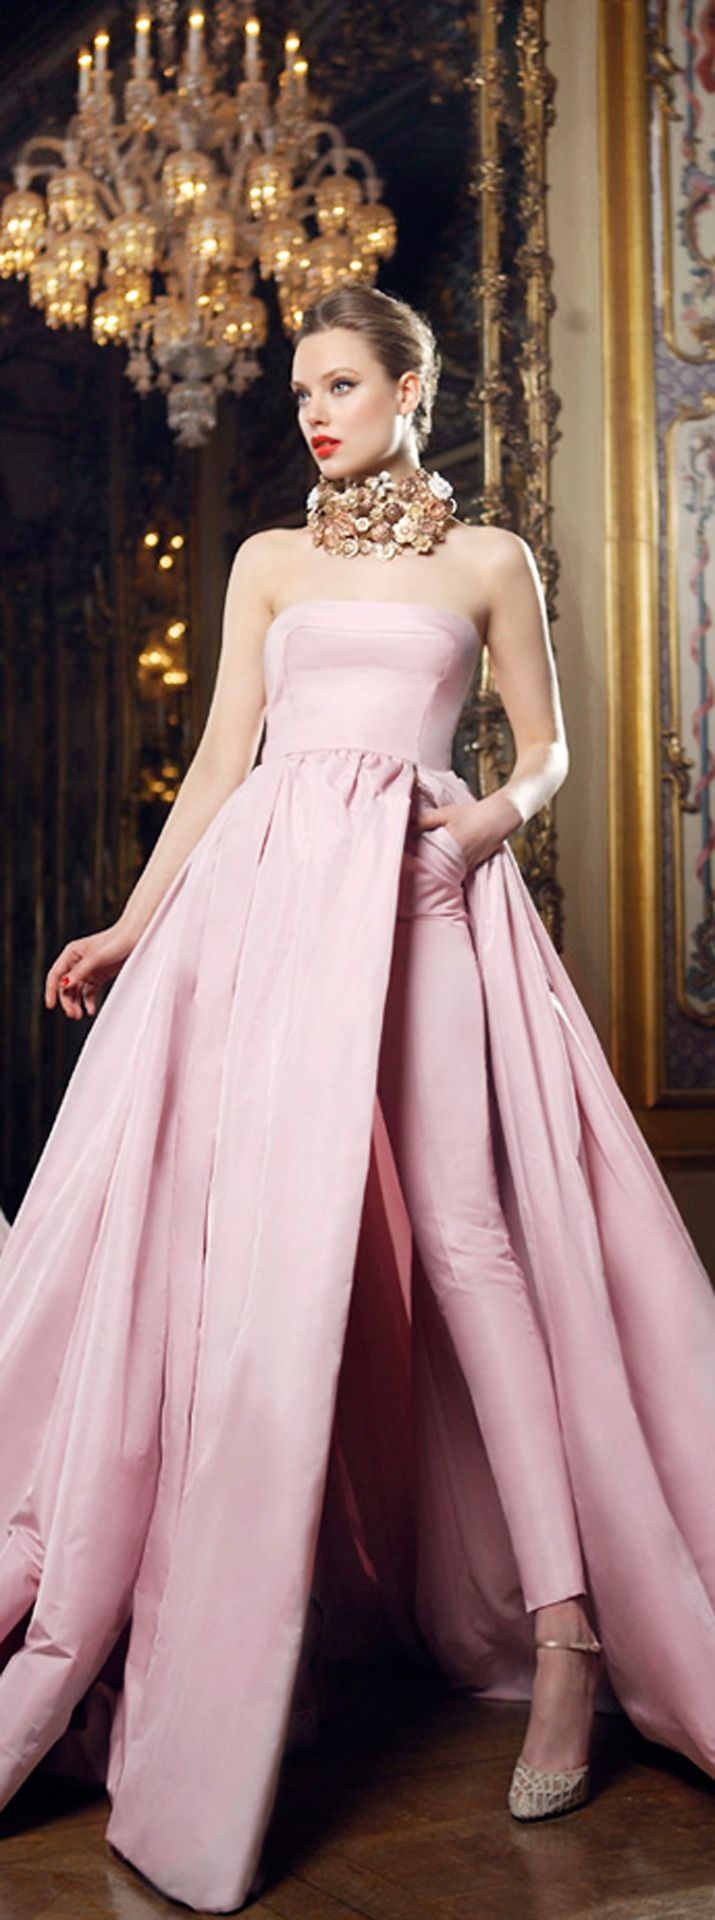 Where can you find party prom dresses in London you would prefer it to be in a hidden boutique to as